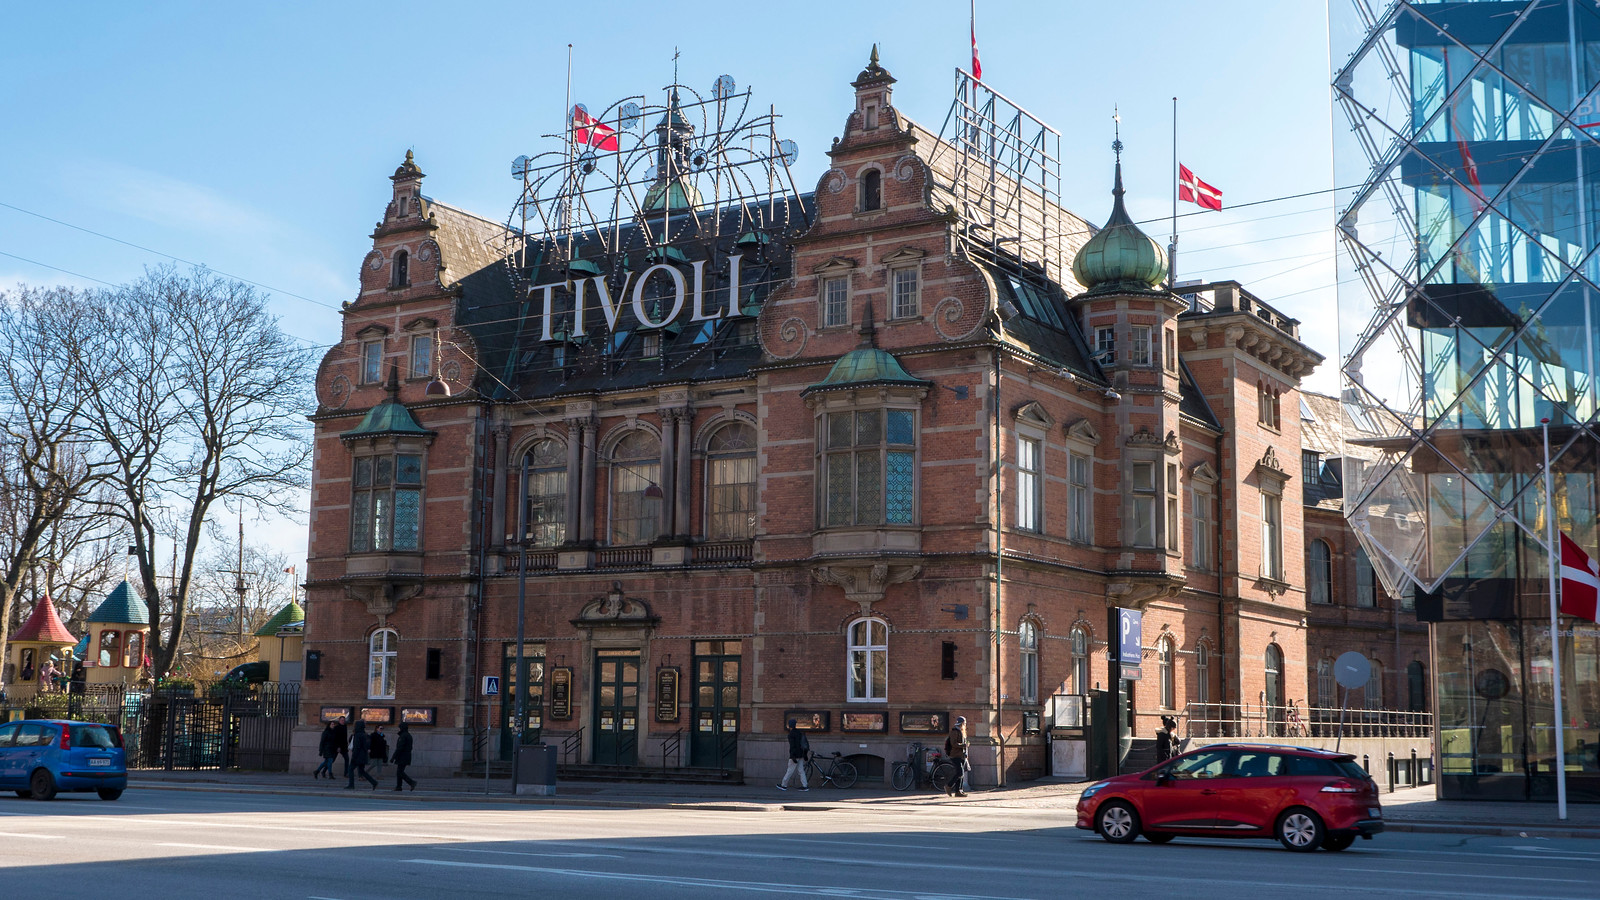 3 Days in Copenhagen Itinerary and Travel Guide - Tivoli Gardens